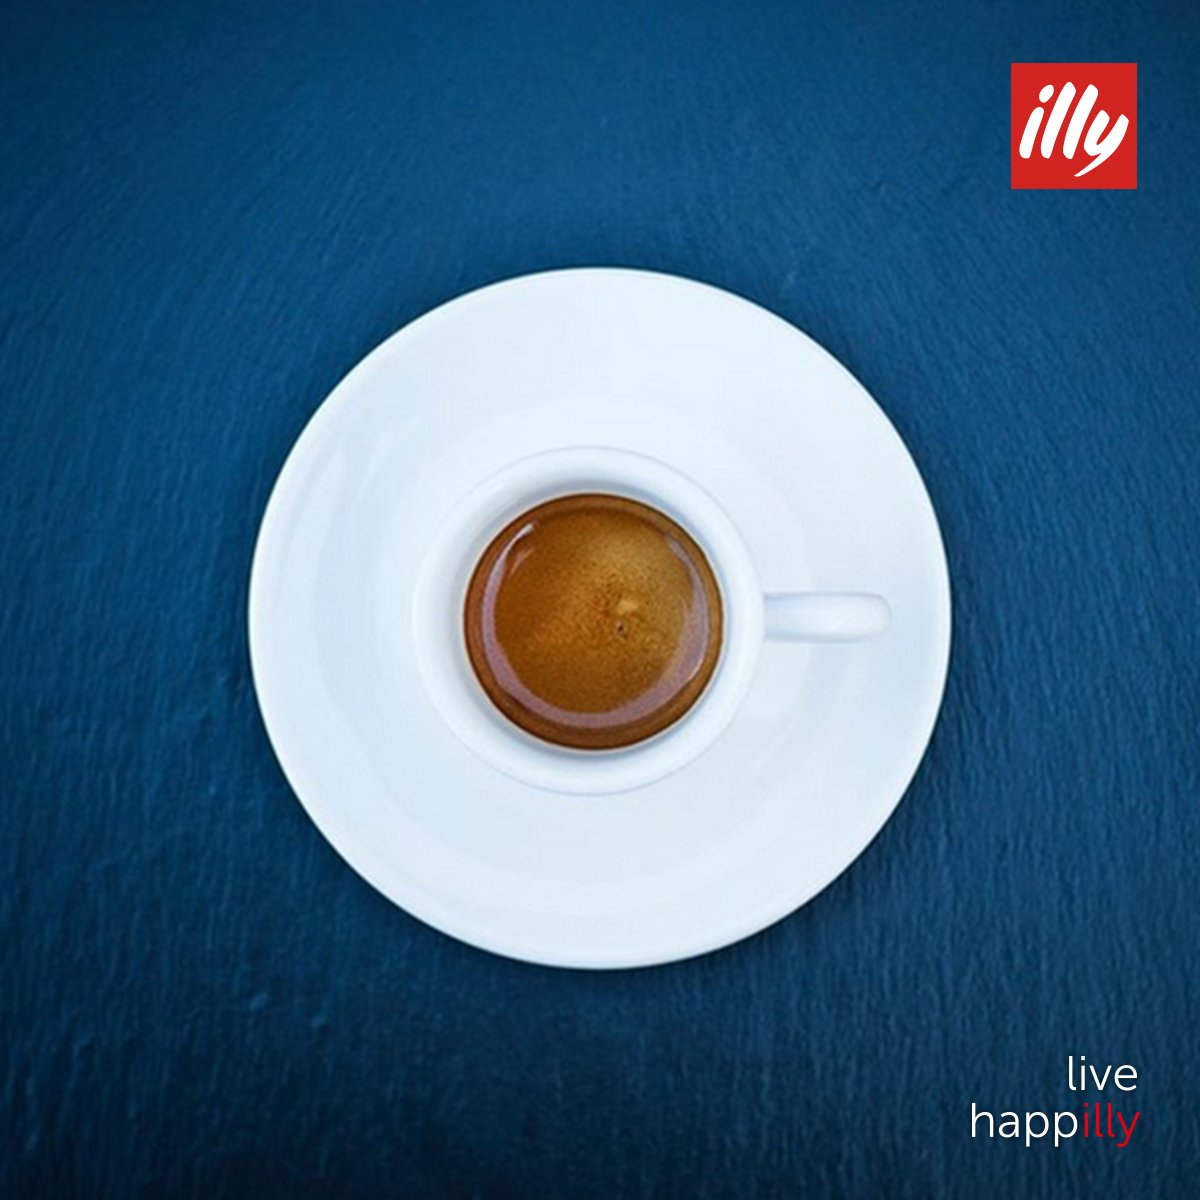 """Espresso consumption is an aesthetic experience, like tasting a vintage wine or admiring a painting."" @andrea_illy https://t.co/MrWq74KRzZ"